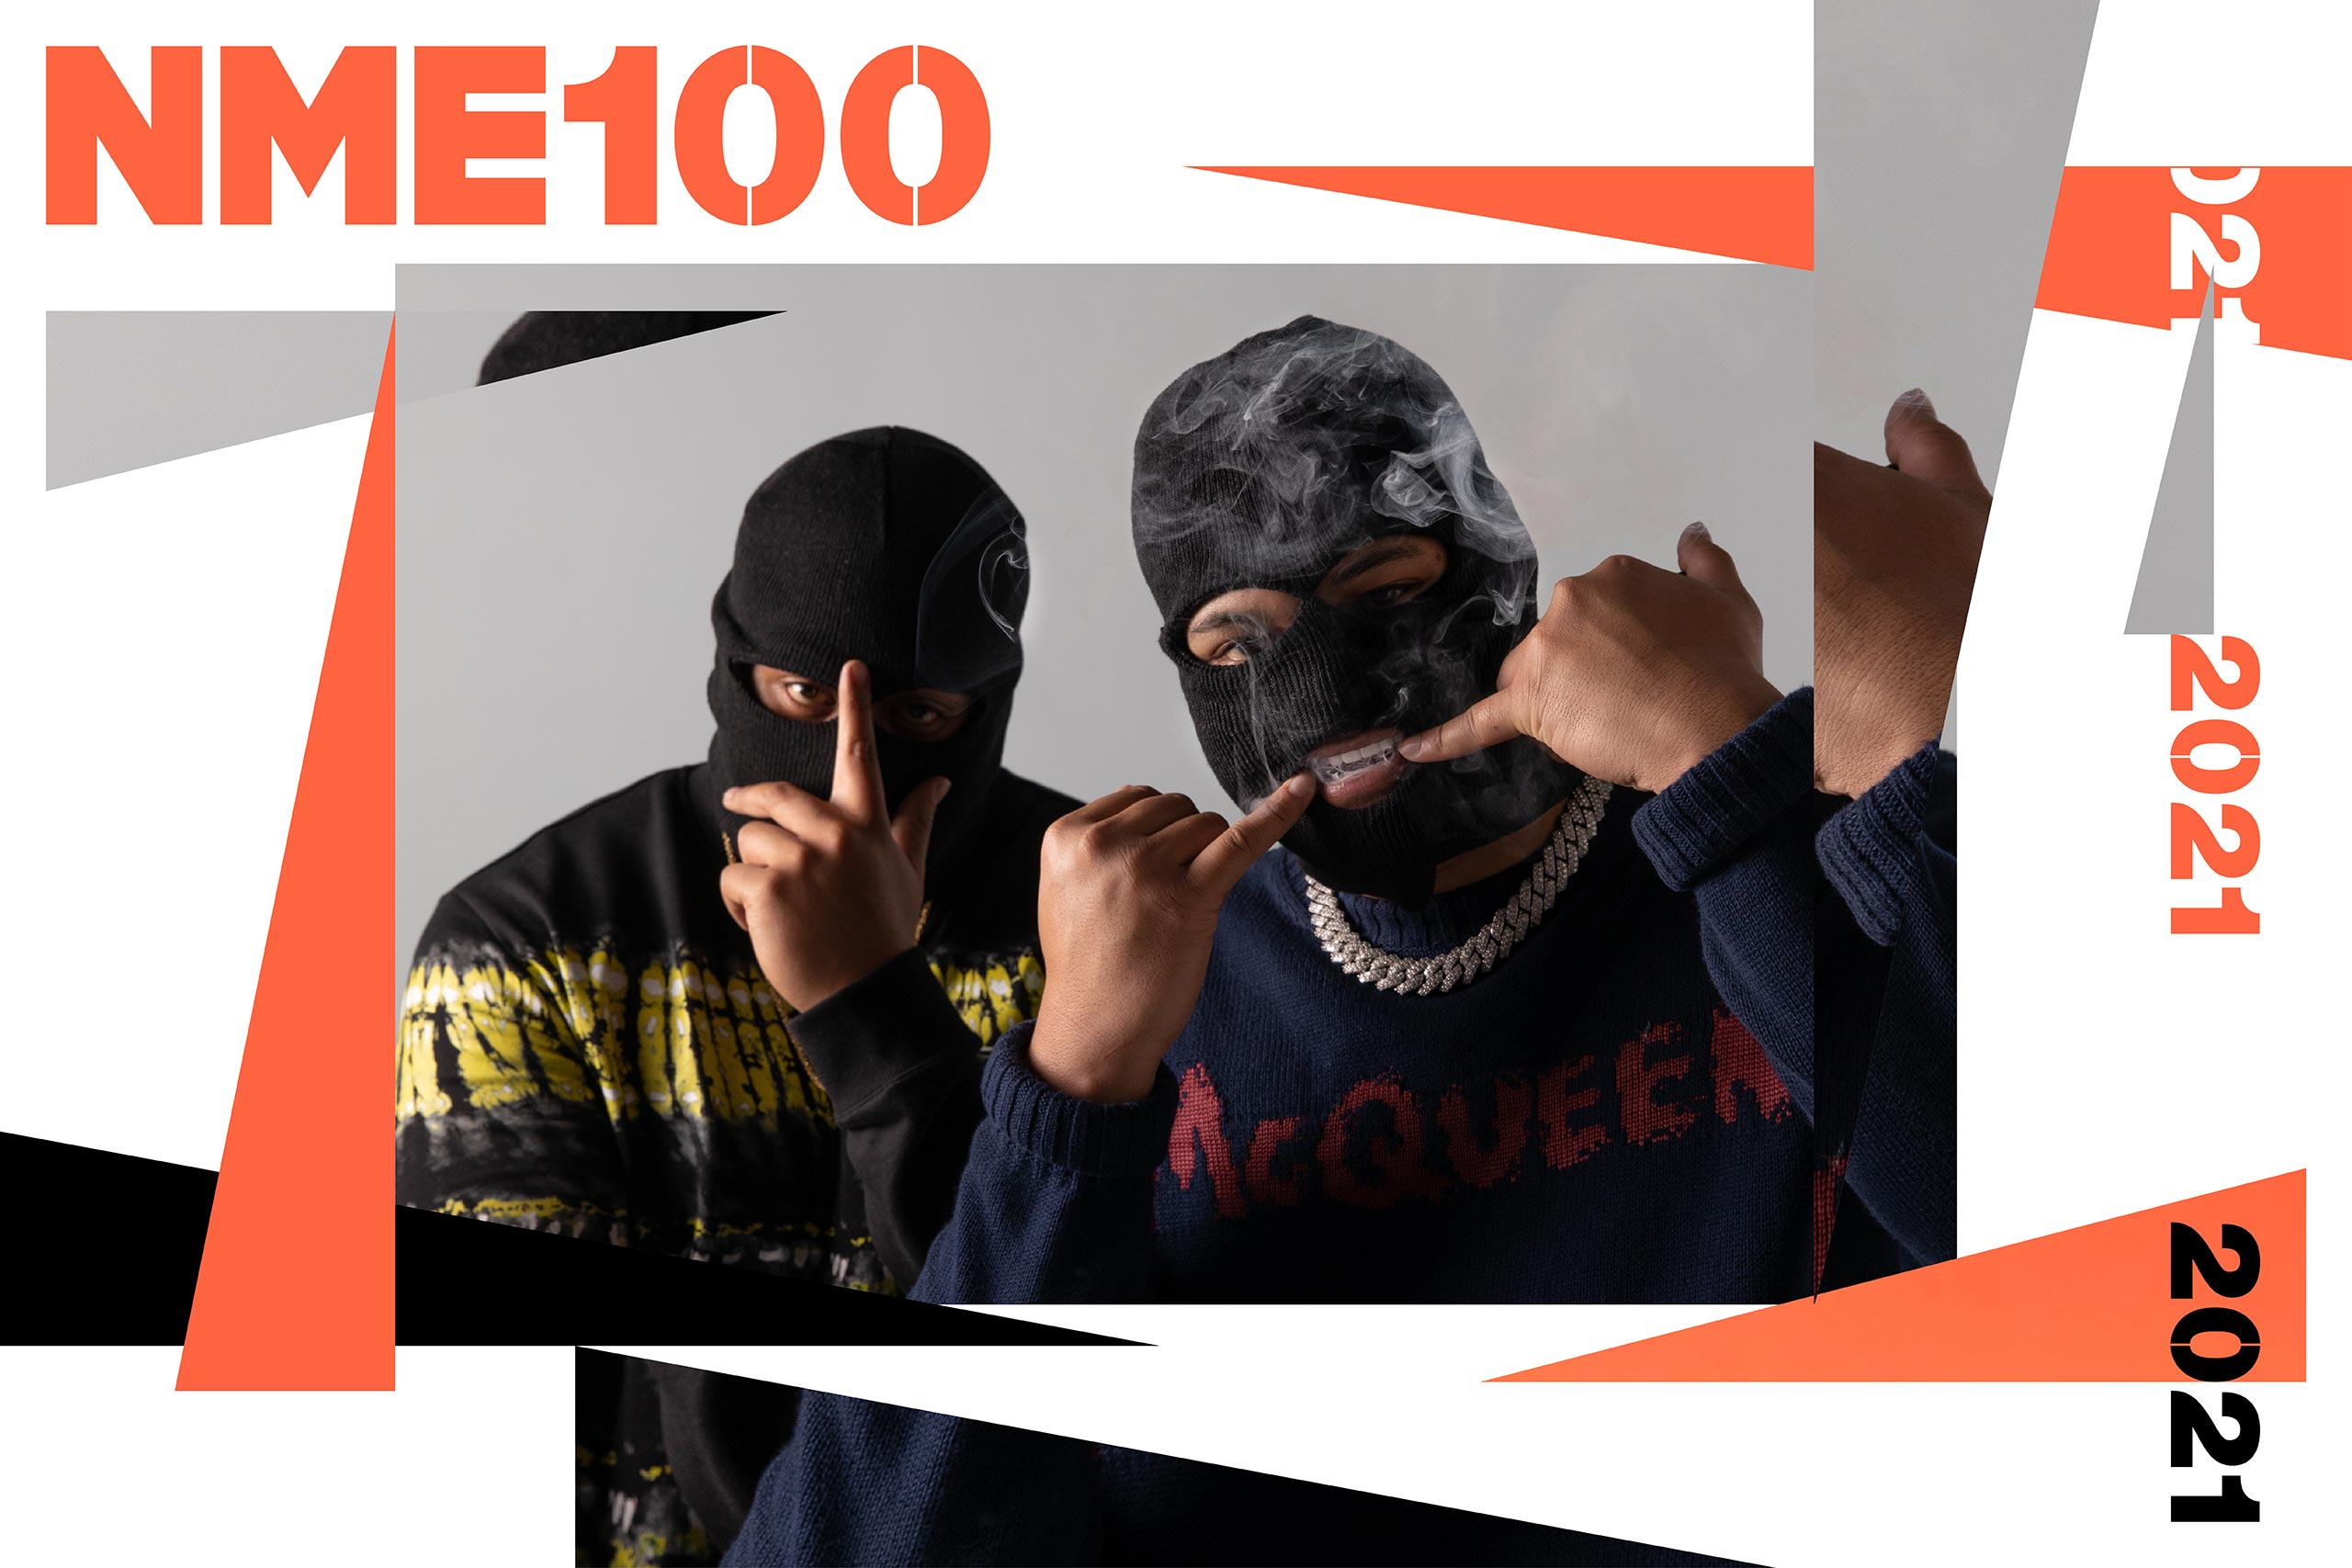 NME 100 onefour